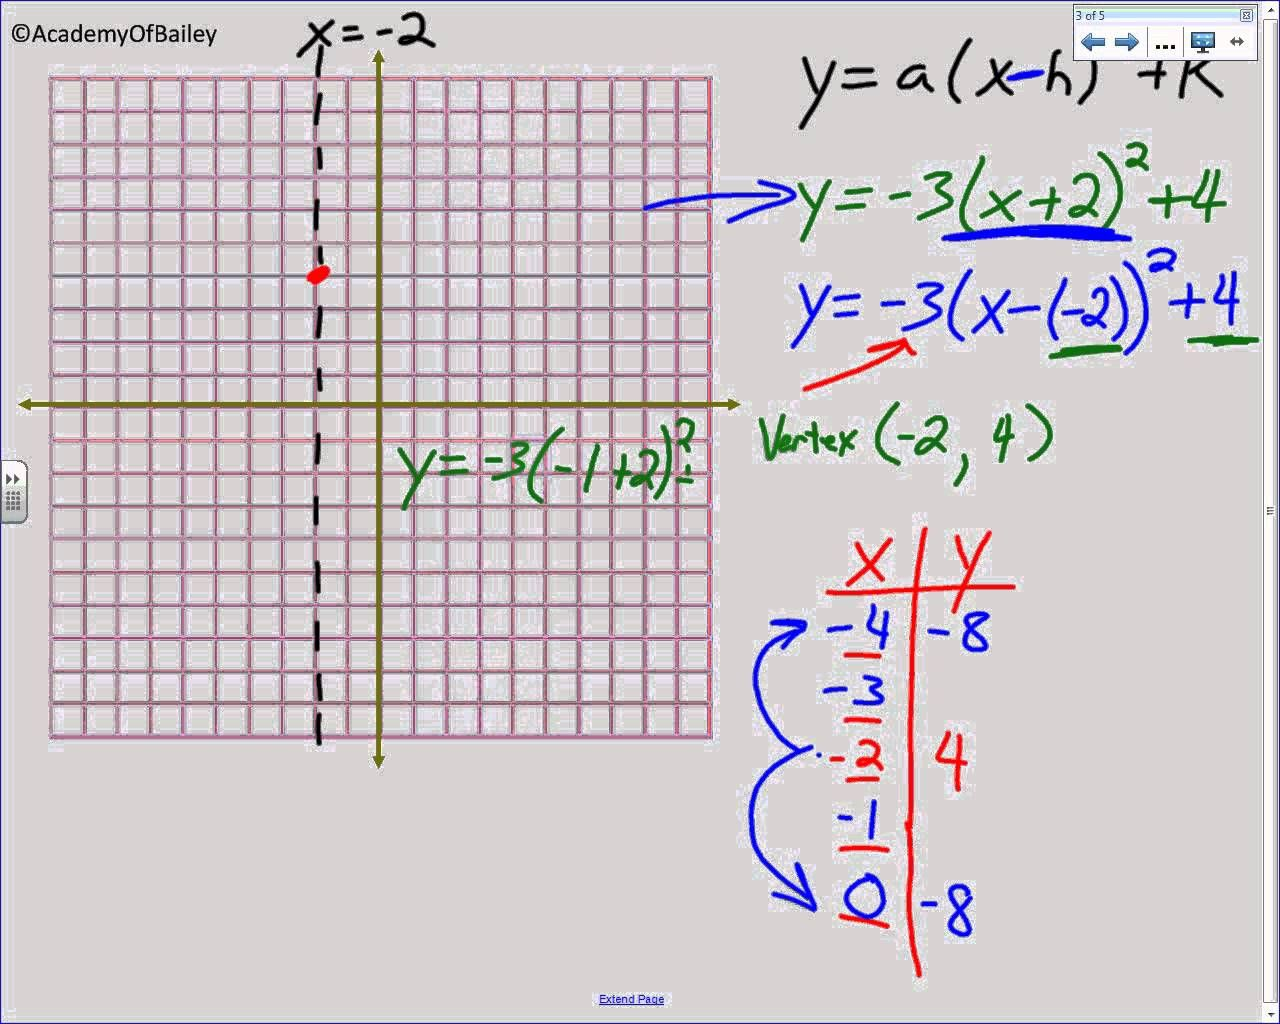 quadratic equation and graph 5 3 the graphs of quadratic equations-x 1 graphs of quadratic equations 2 the  graphs of 1st degree equations ax + by = c are straight lines.